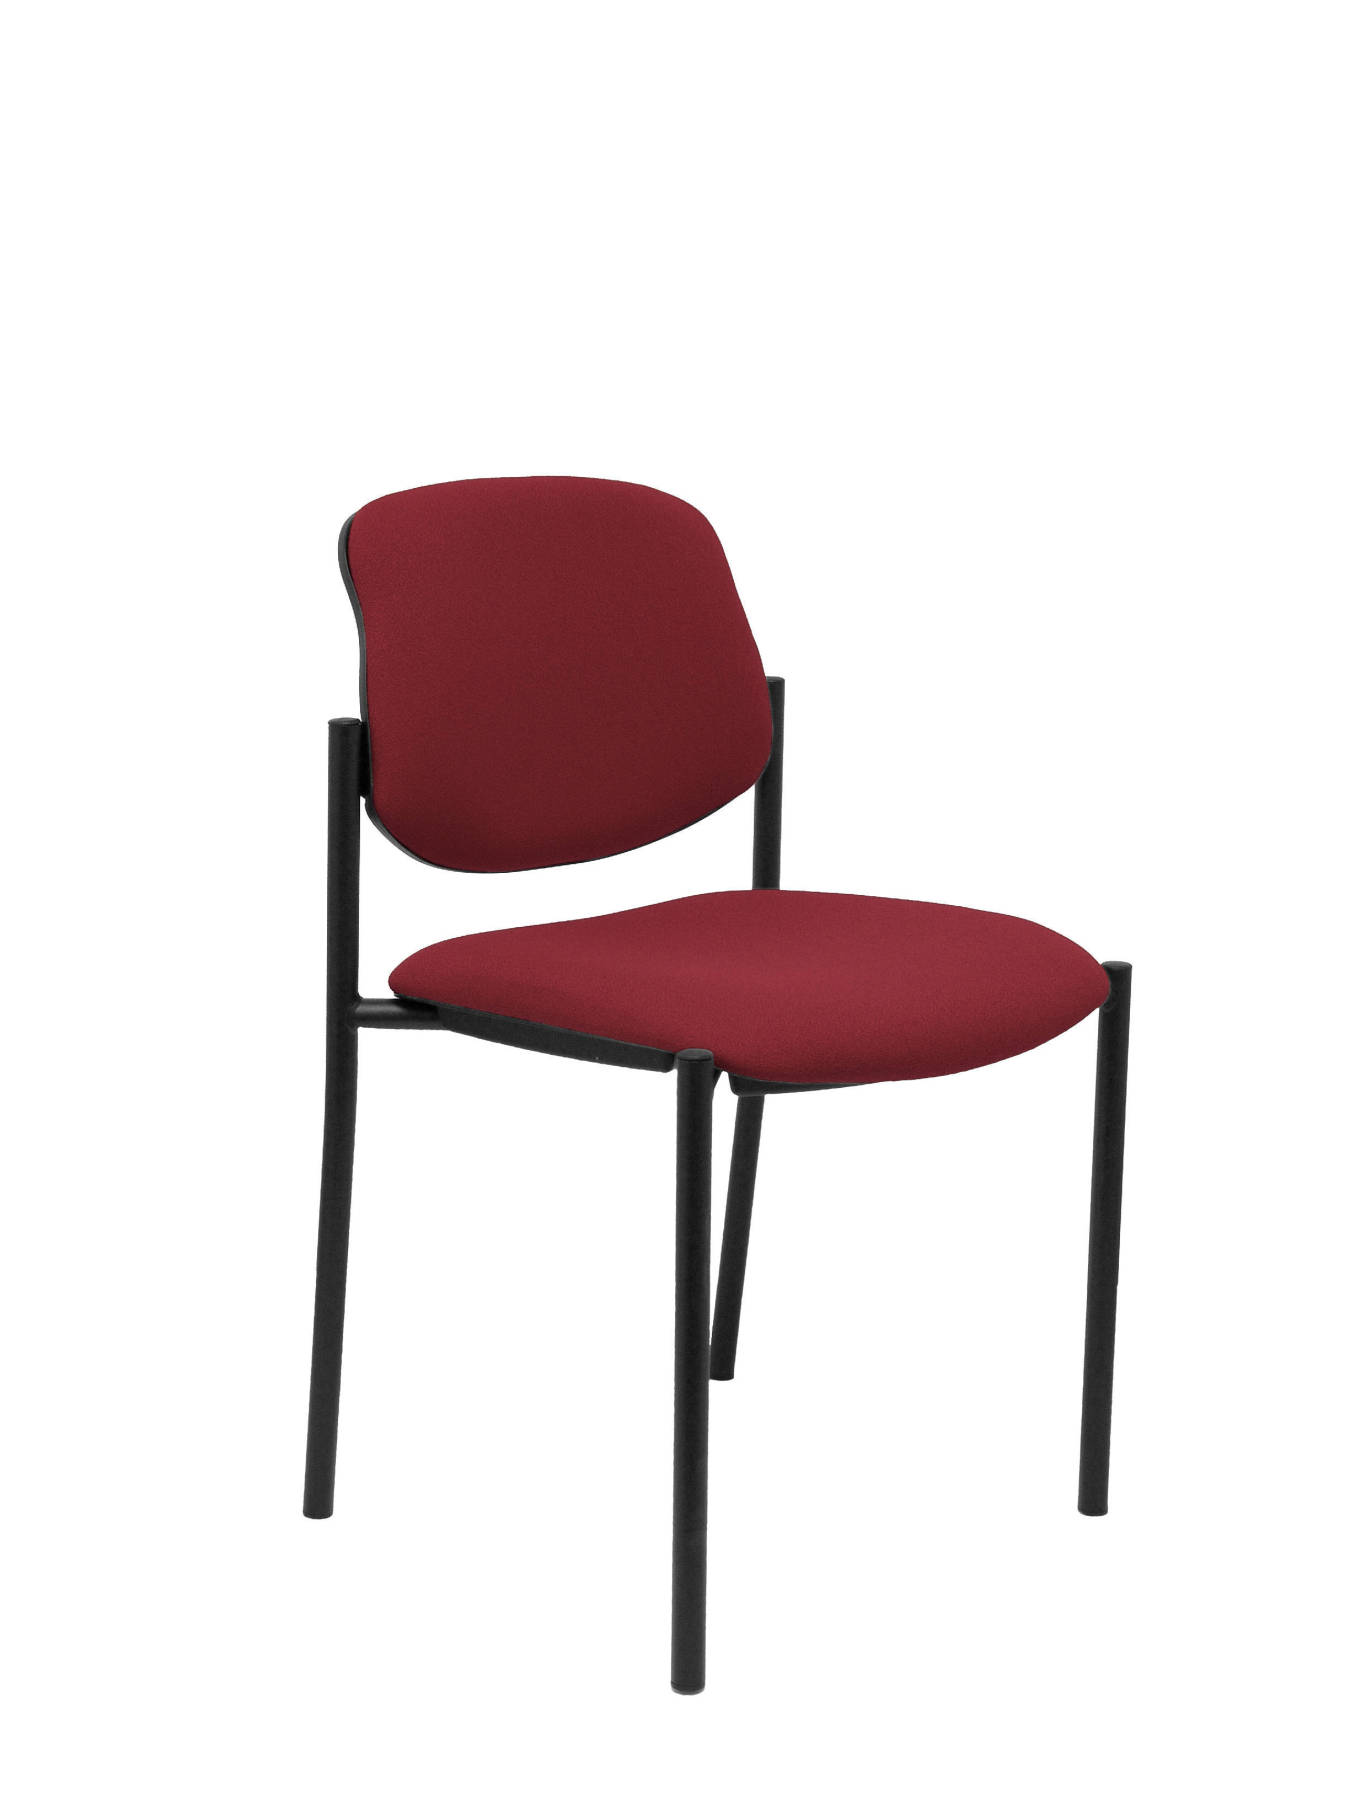 Visitor Chair 4's Topsy And Estructrua Negro-up Seat And Backstop Upholstered In BALI Tissue Maroon Color TAPHOLE AND CR